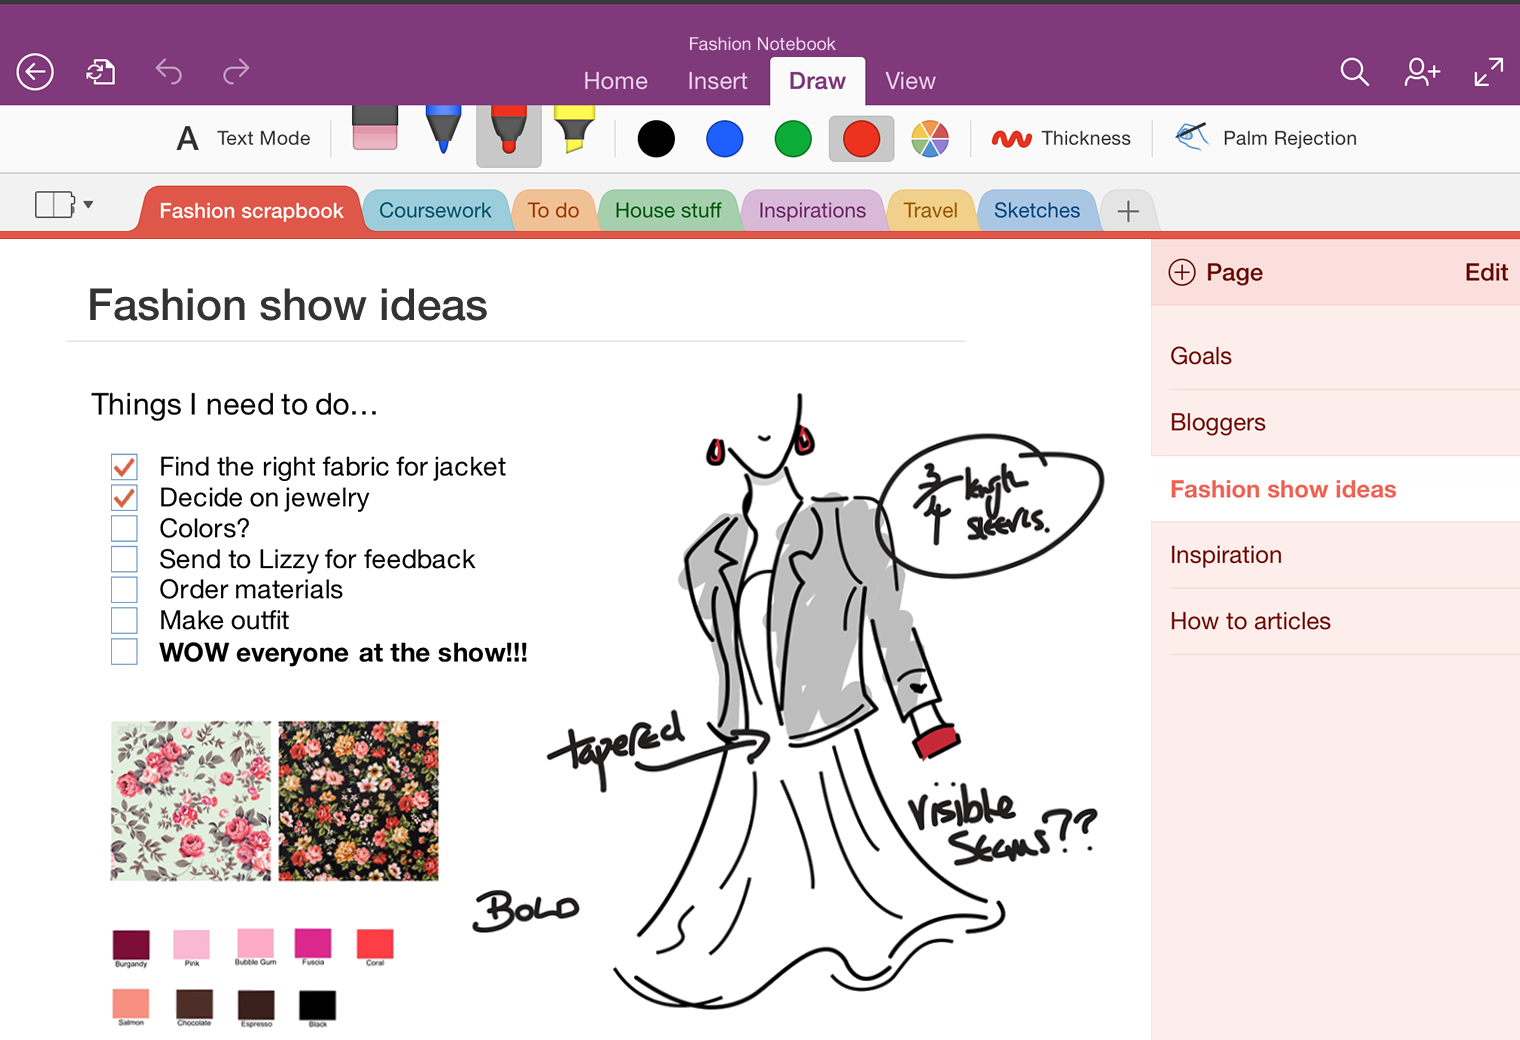 Microsoft updates OneNote with OCR support across all